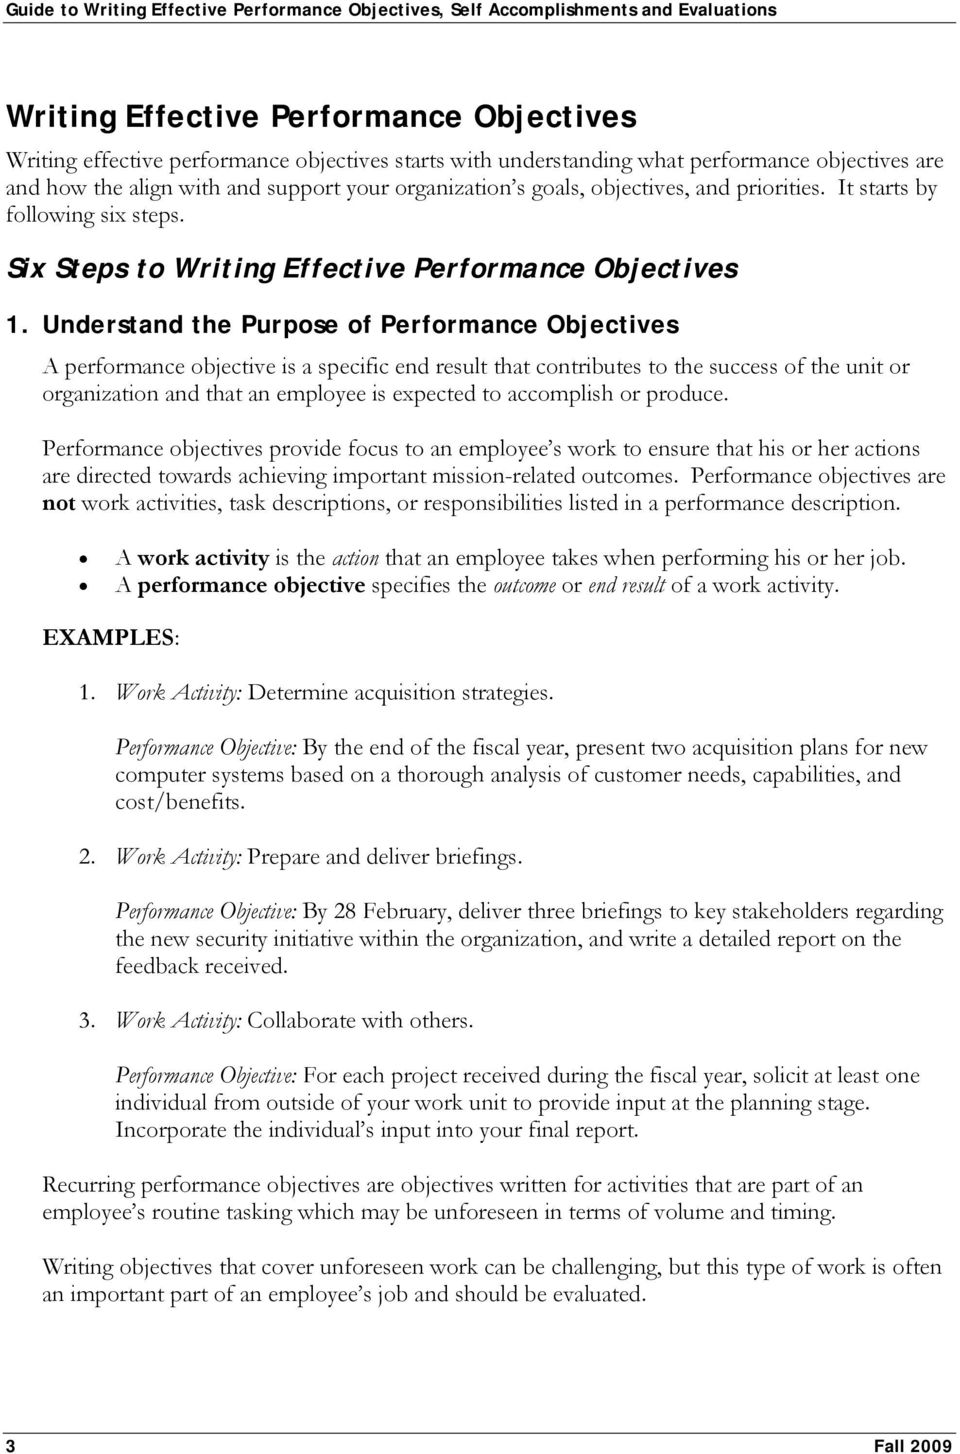 Guide To Writing Effective Performance Objectives Self